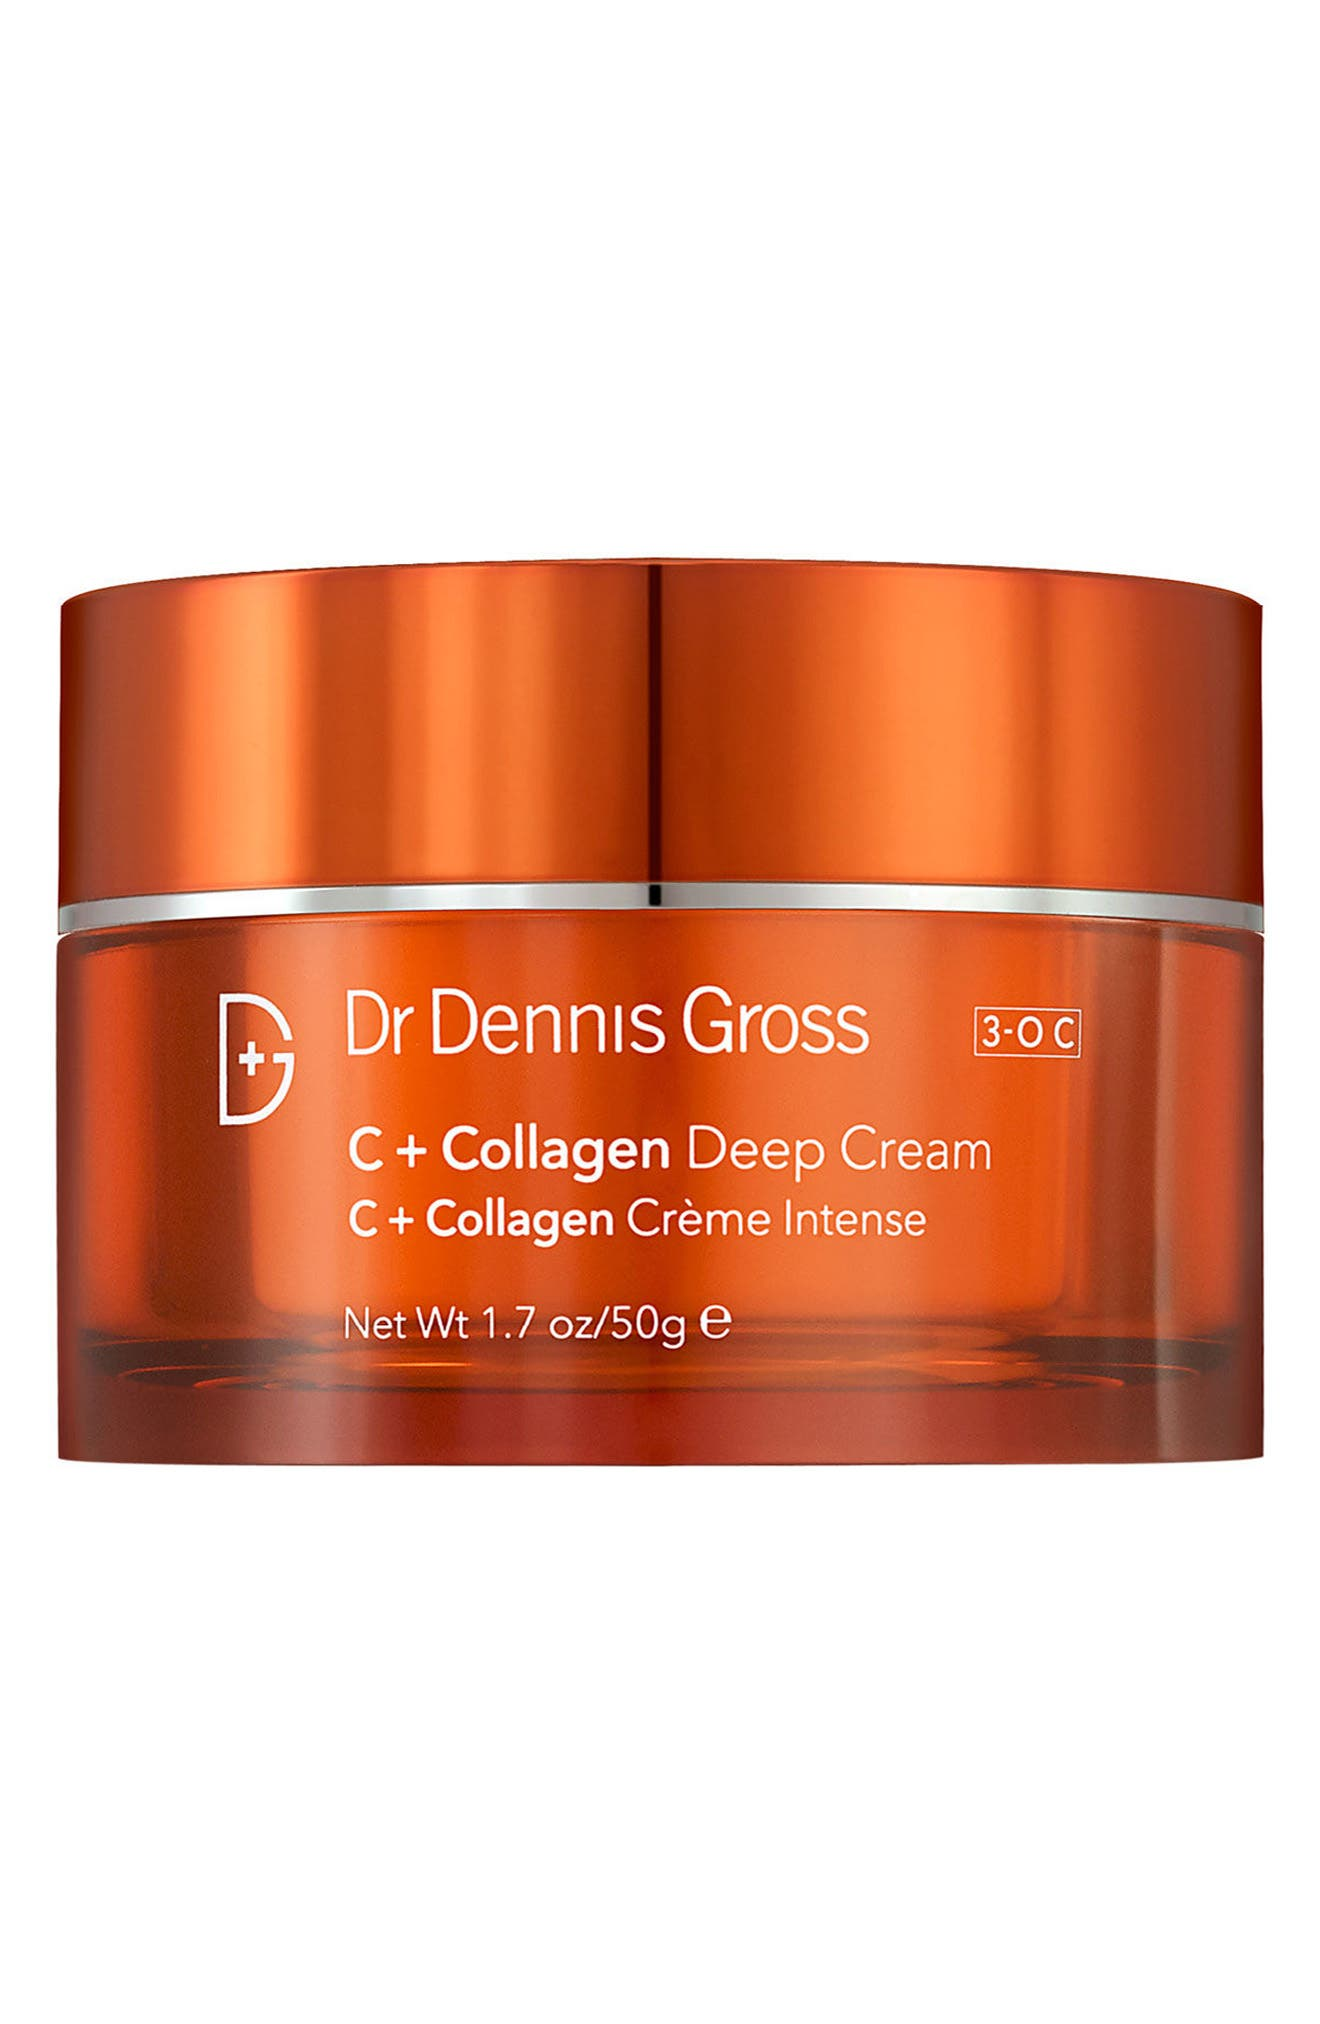 Dr. Dennis Gross Skincare C + Collagen Deep Cream (Nordstrom Exclusive)